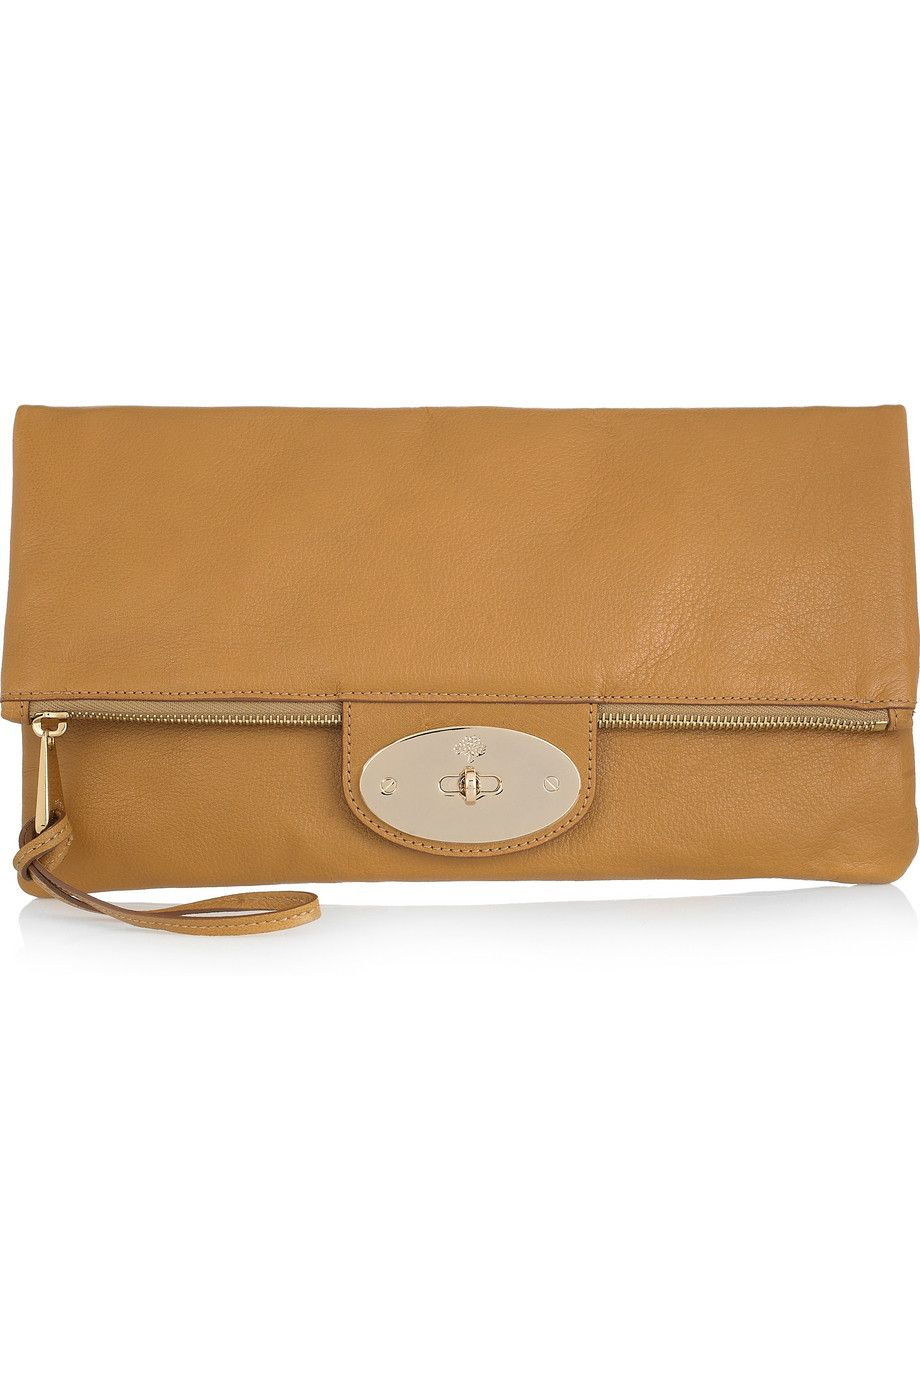 Mulberry - Oversized Postman's Lock leather clutch